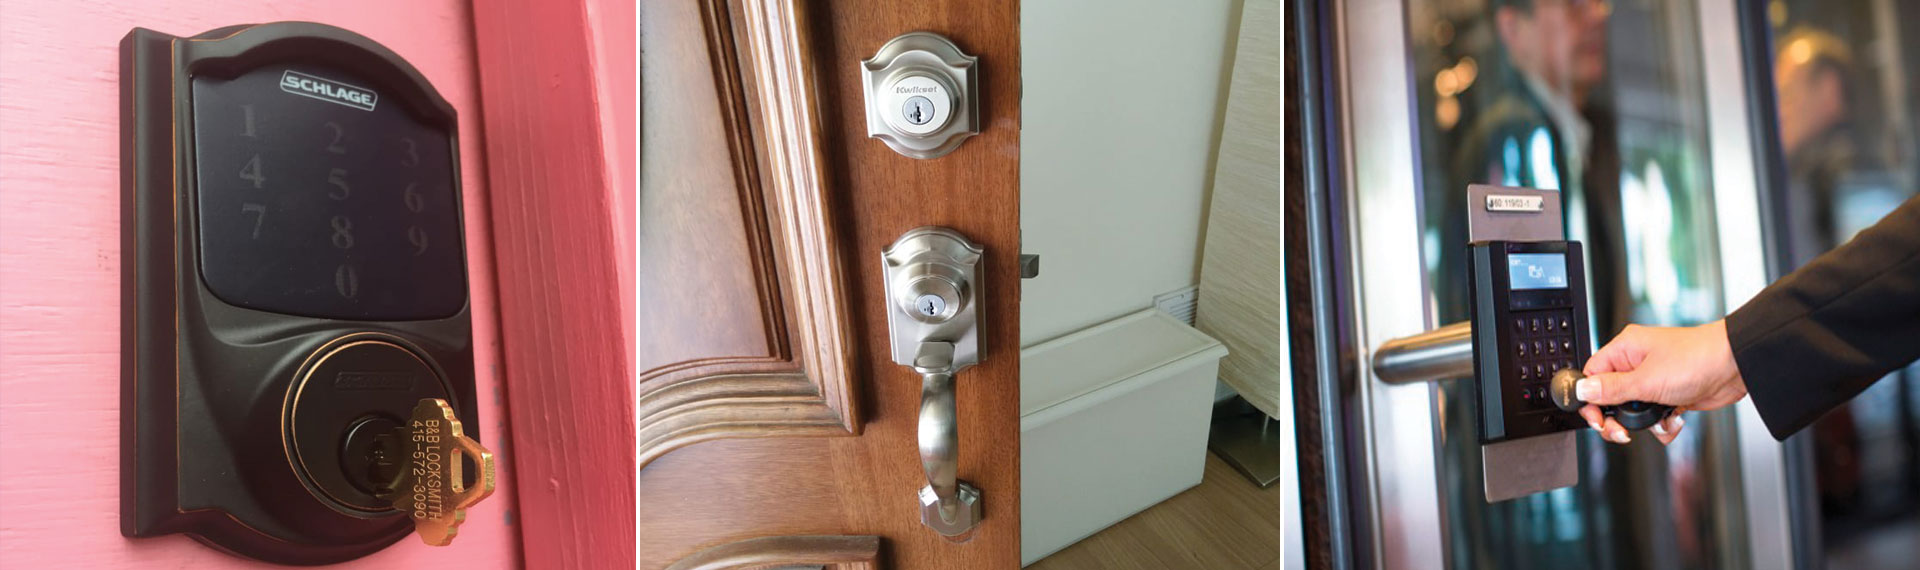 Locksmith services La Mirada CA